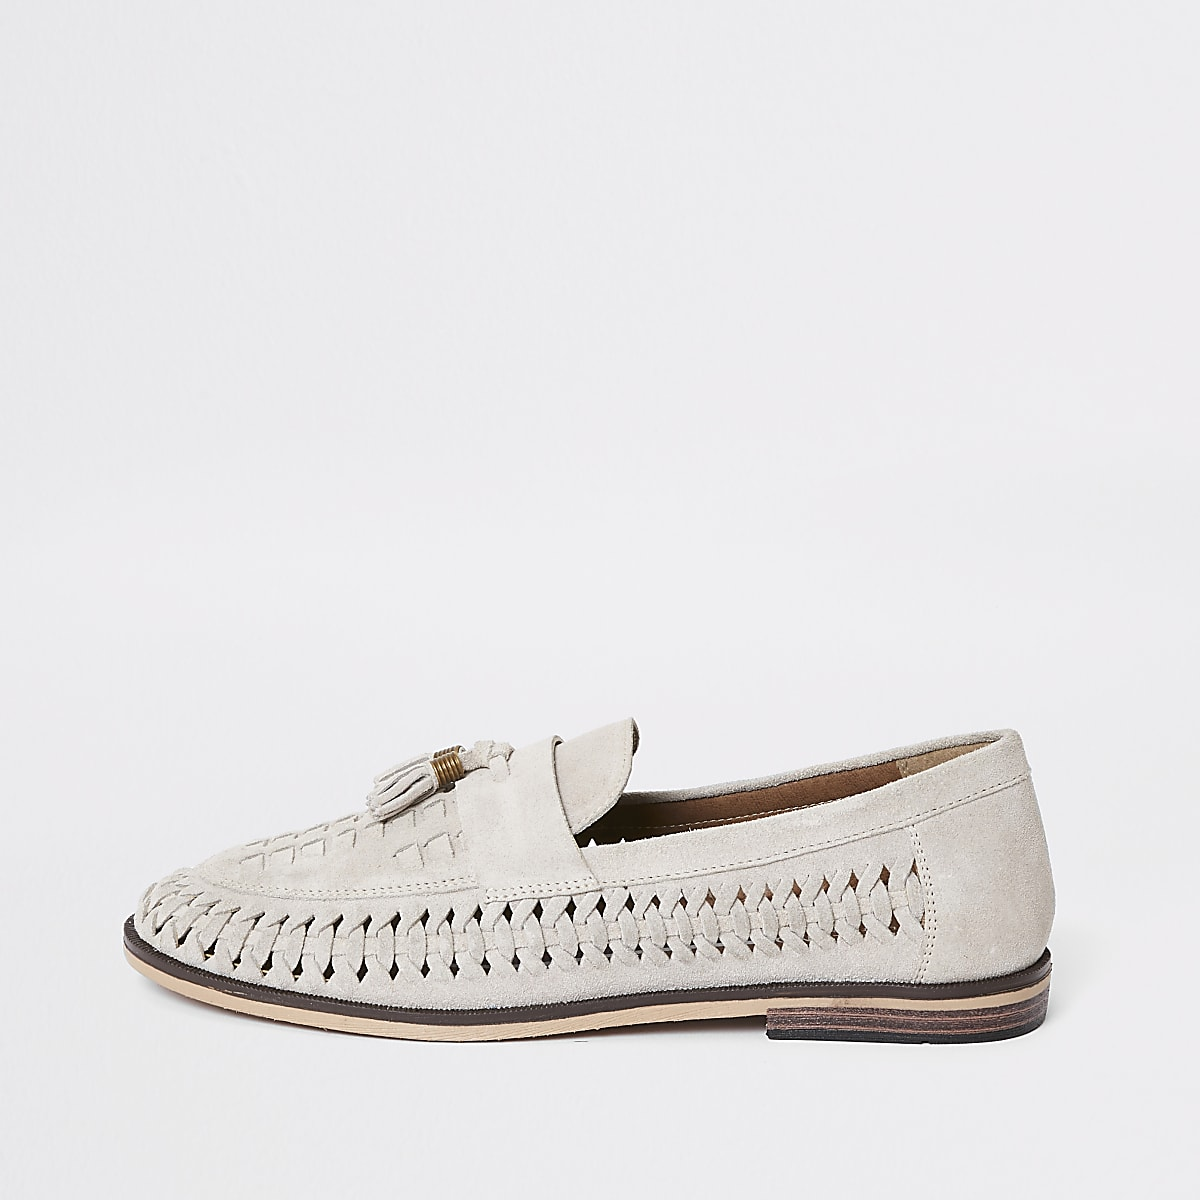 Light grey suede woven tassel loafers